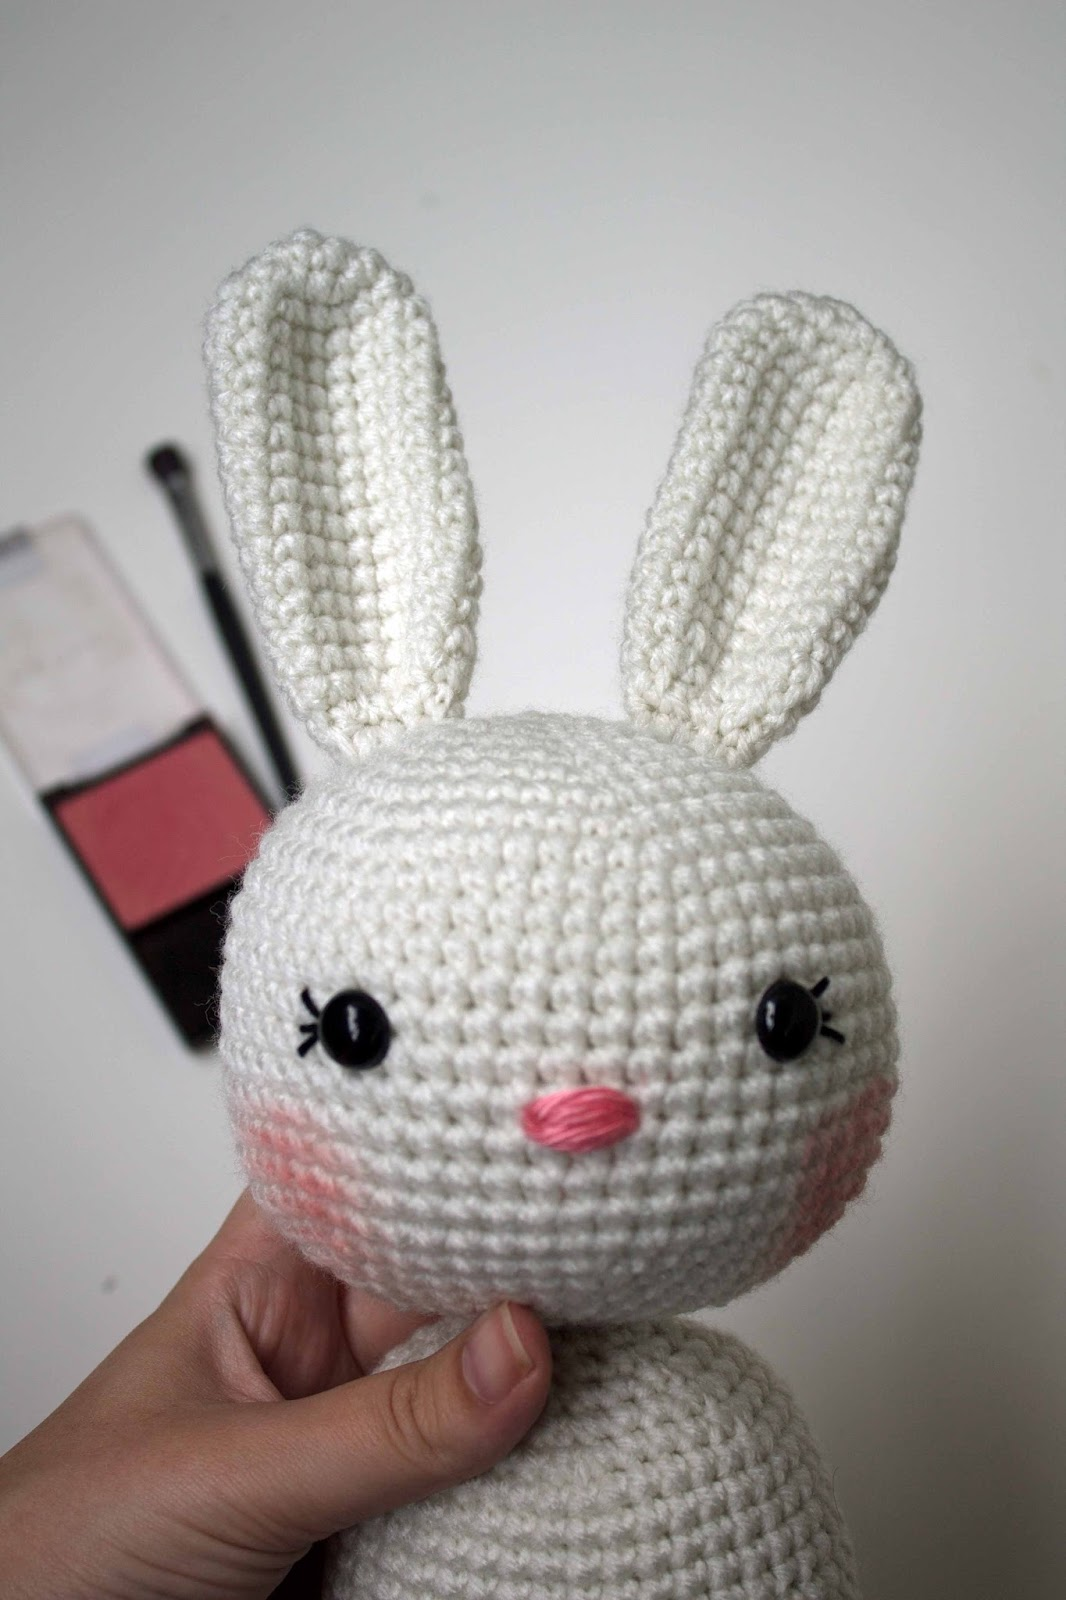 the best amigurumi tips and tricks